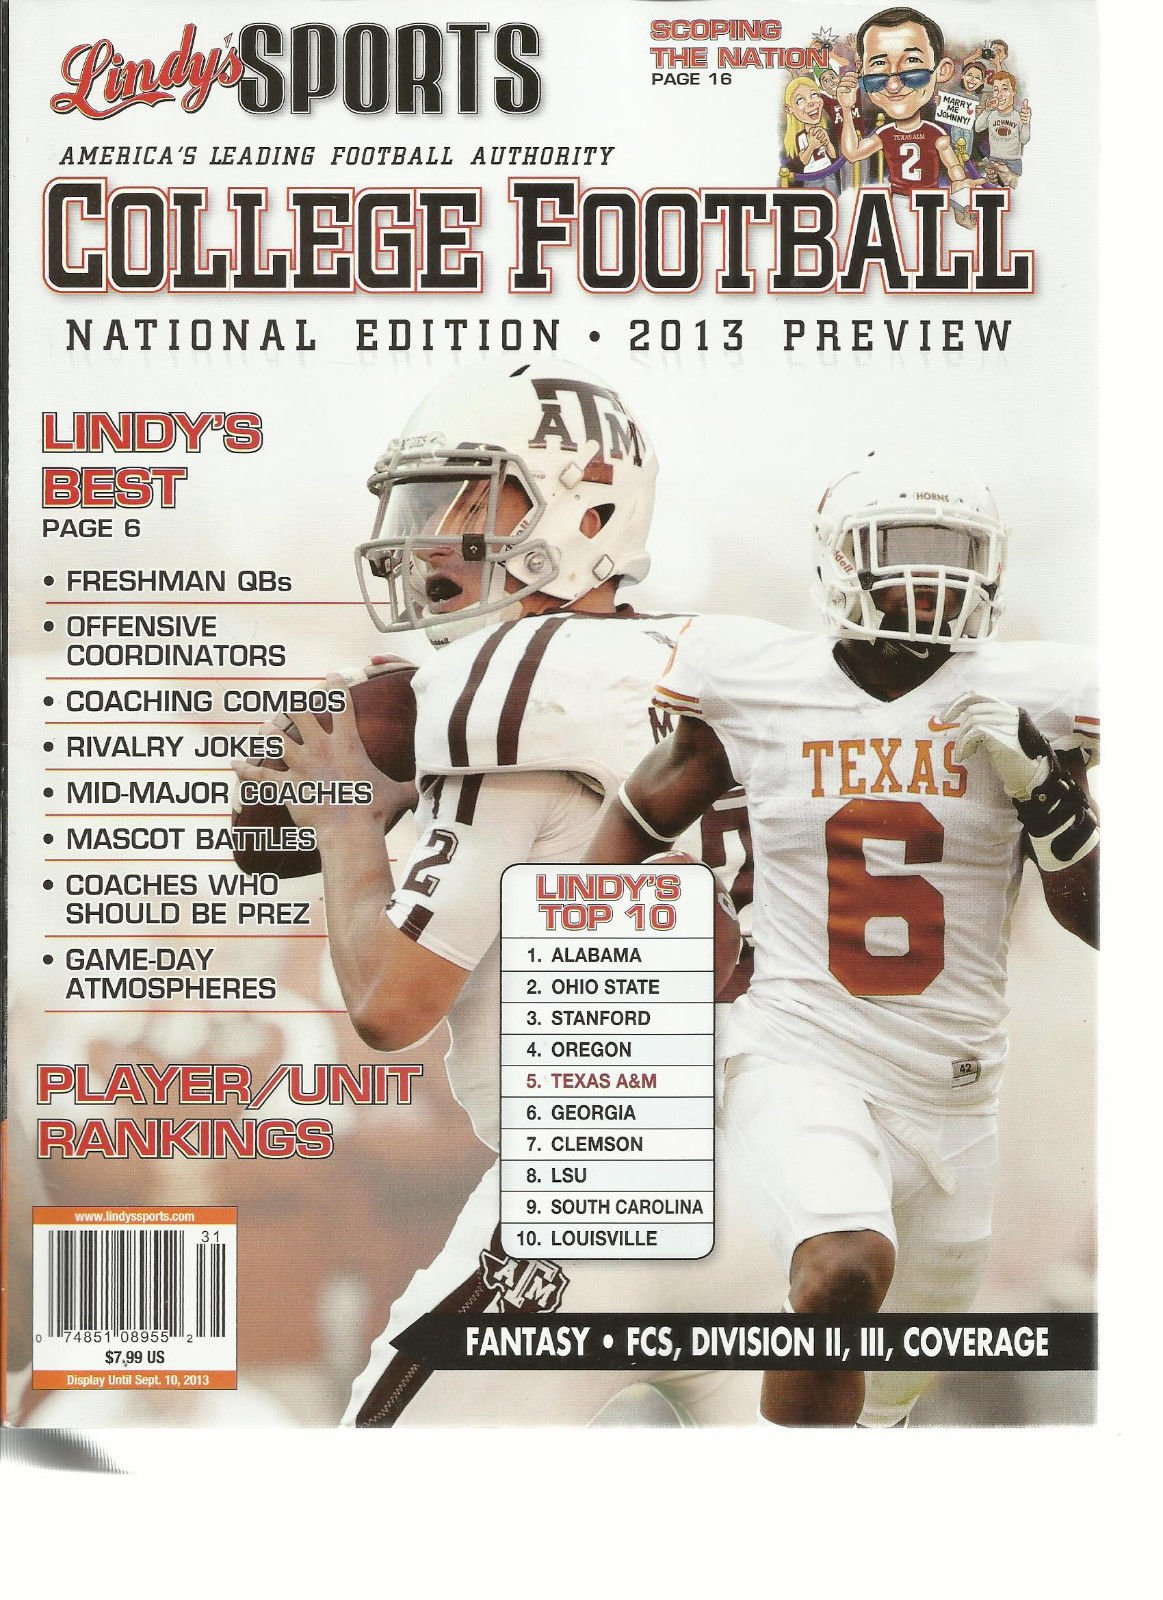 LINDY'S SPORTS COLLEGE FOOTBALL 2013 (NATIONAL EDITION * 2013 PREVIEW)